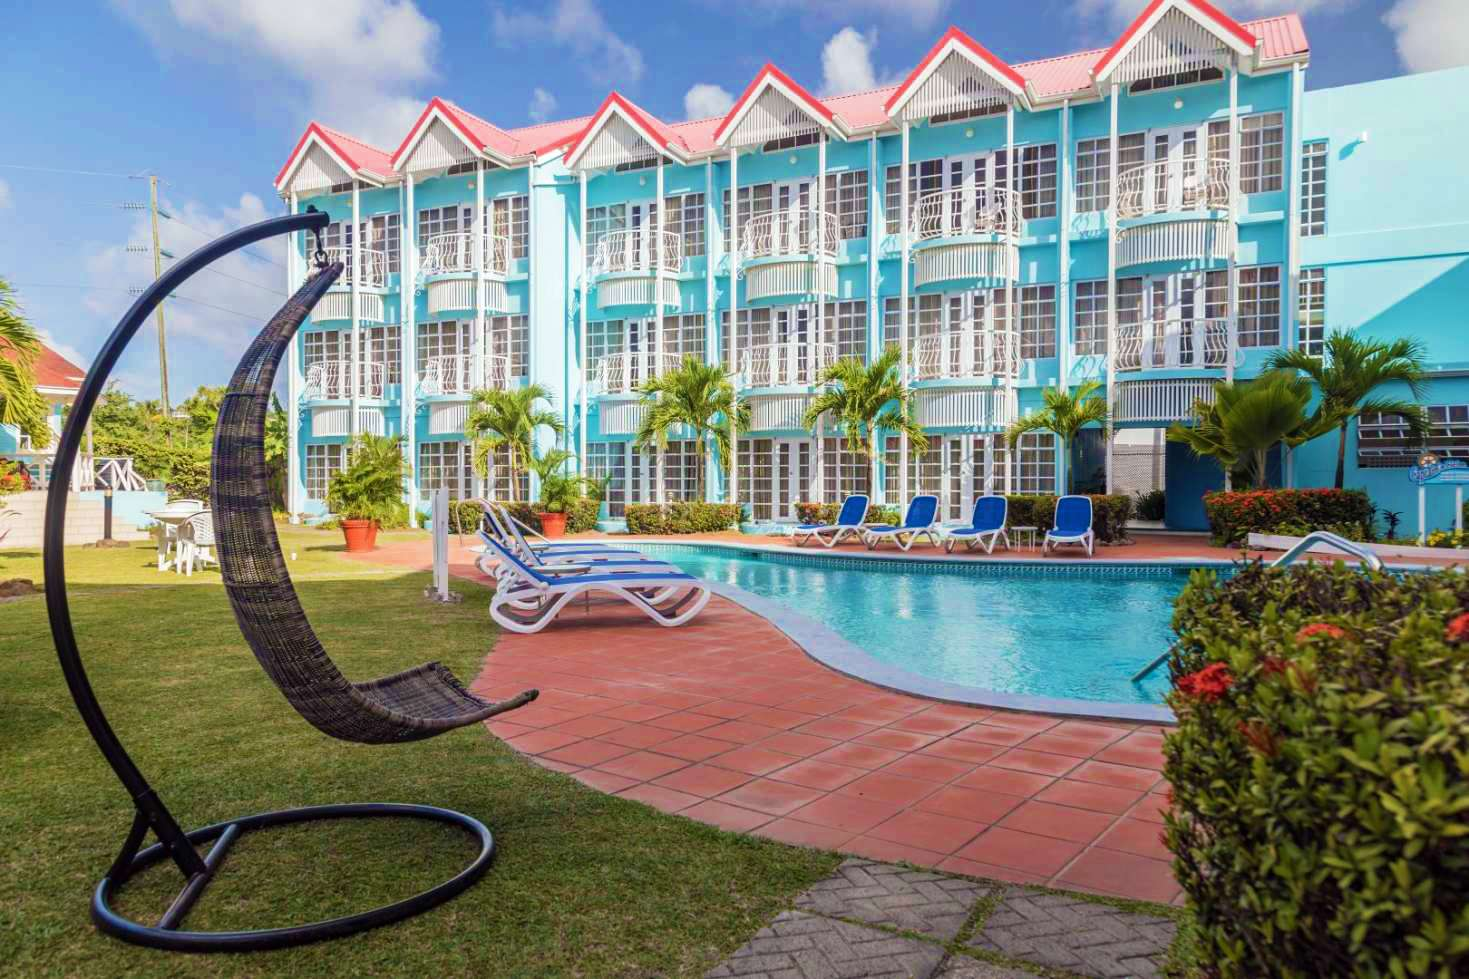 St. Lucia: Tropical Boutique All-Inc Escape w/Unlimited Water Park Access & Extras - Save 57%